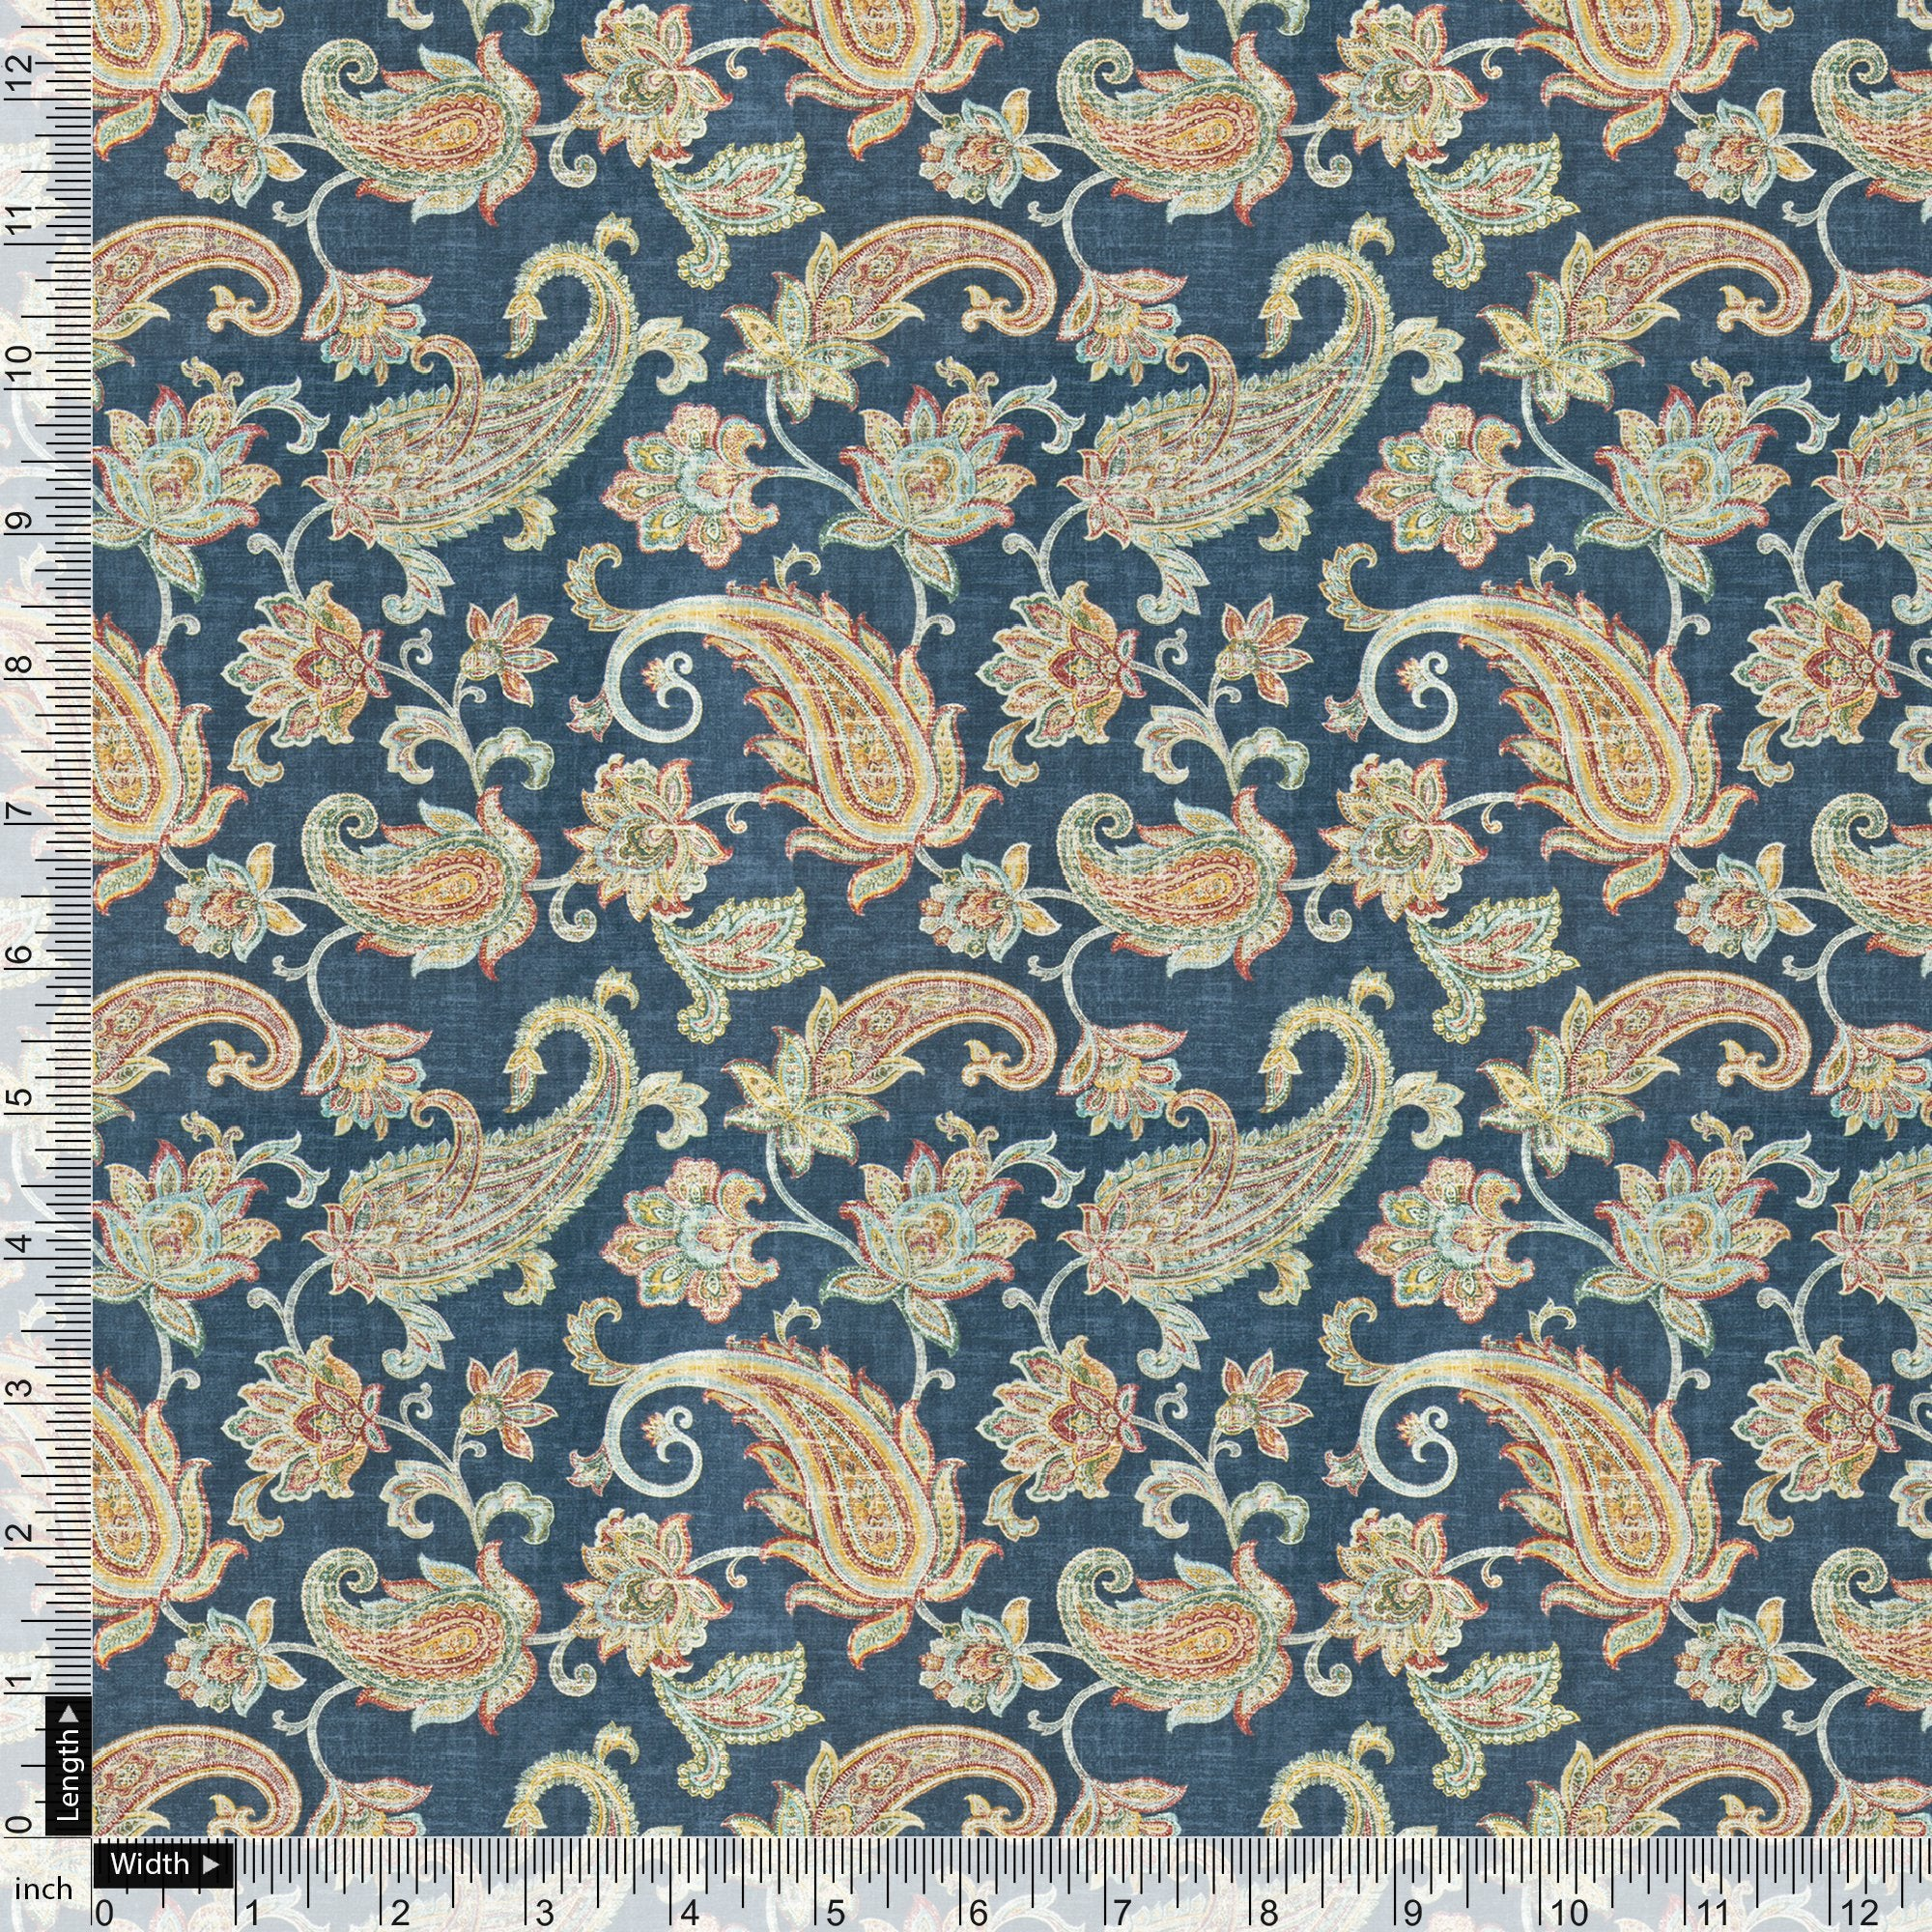 Multi color Paisley Over Blue Base Digital Printed Fabric - FAB VOGUE Studio. Shop Fabric @ www.fabvoguestudio.com